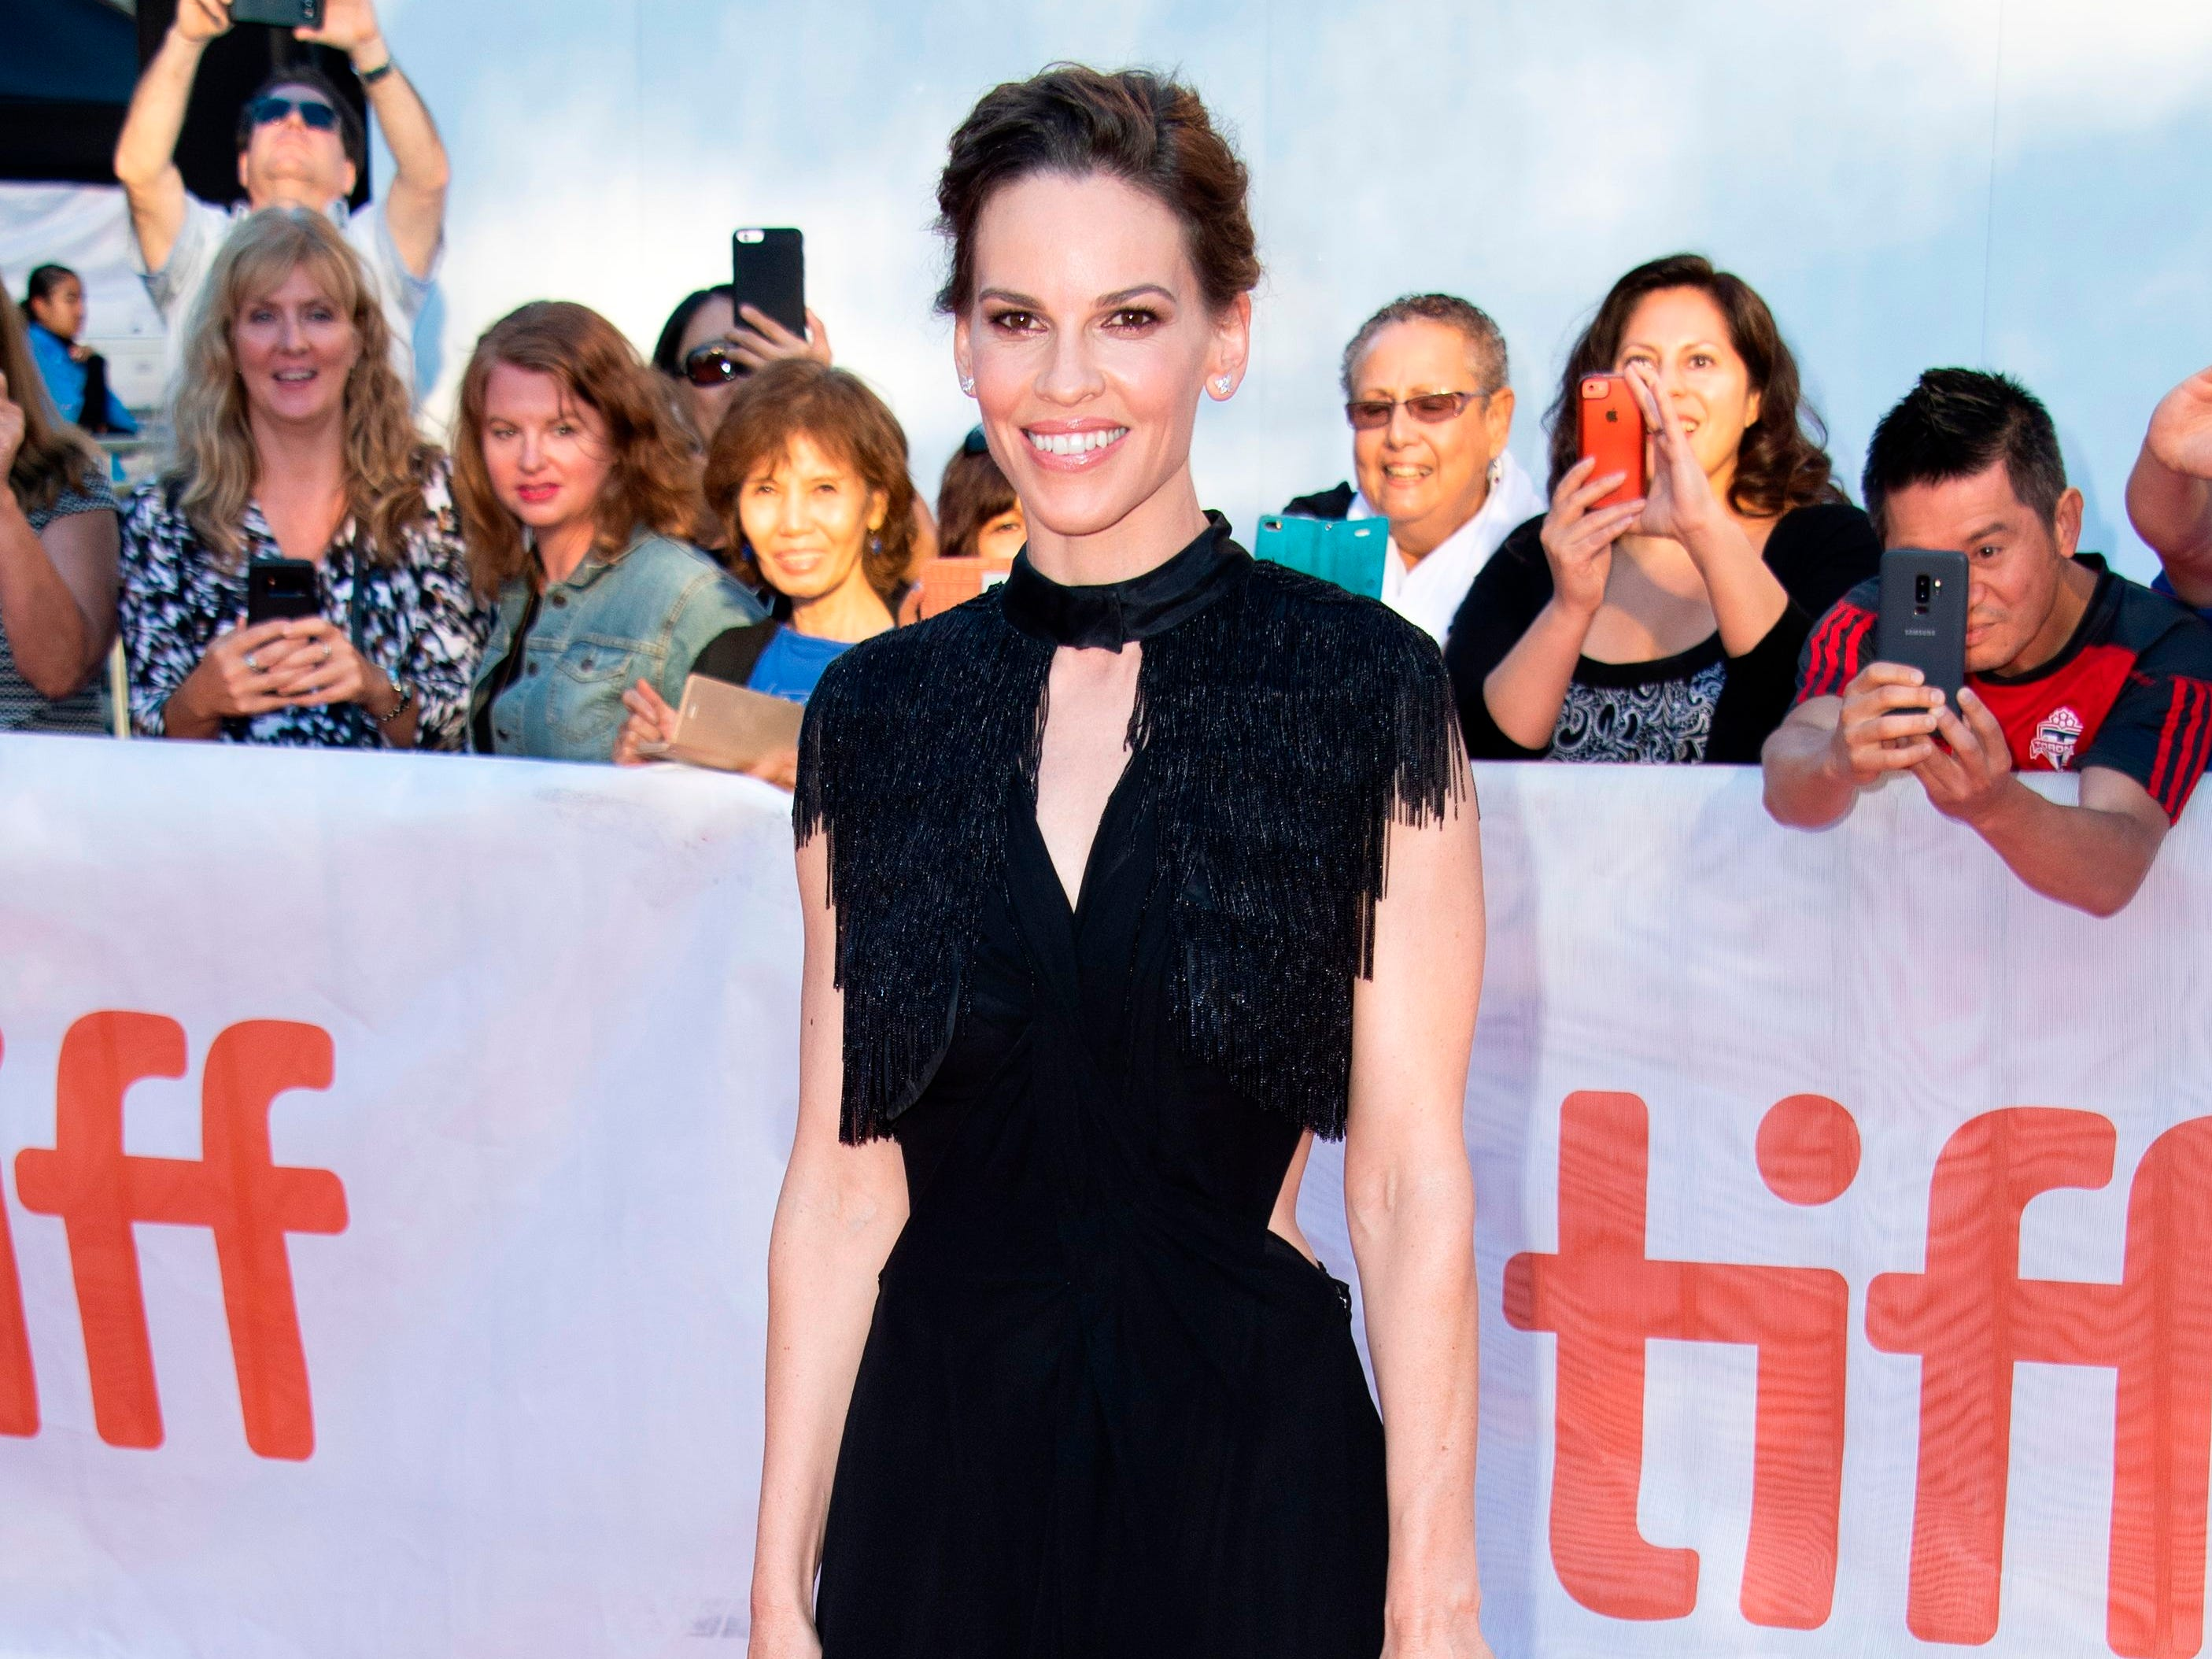 US actress Hilary Swank attends the Premiere of 'What They Had' during the Toronto International Film Festival, on September 12, 2018, in Toronto, Ontario, Canada. (Photo by VALERIE MACON / AFP)VALERIE MACON/AFP/Getty Images ORIG FILE ID: AFP_1921VZ